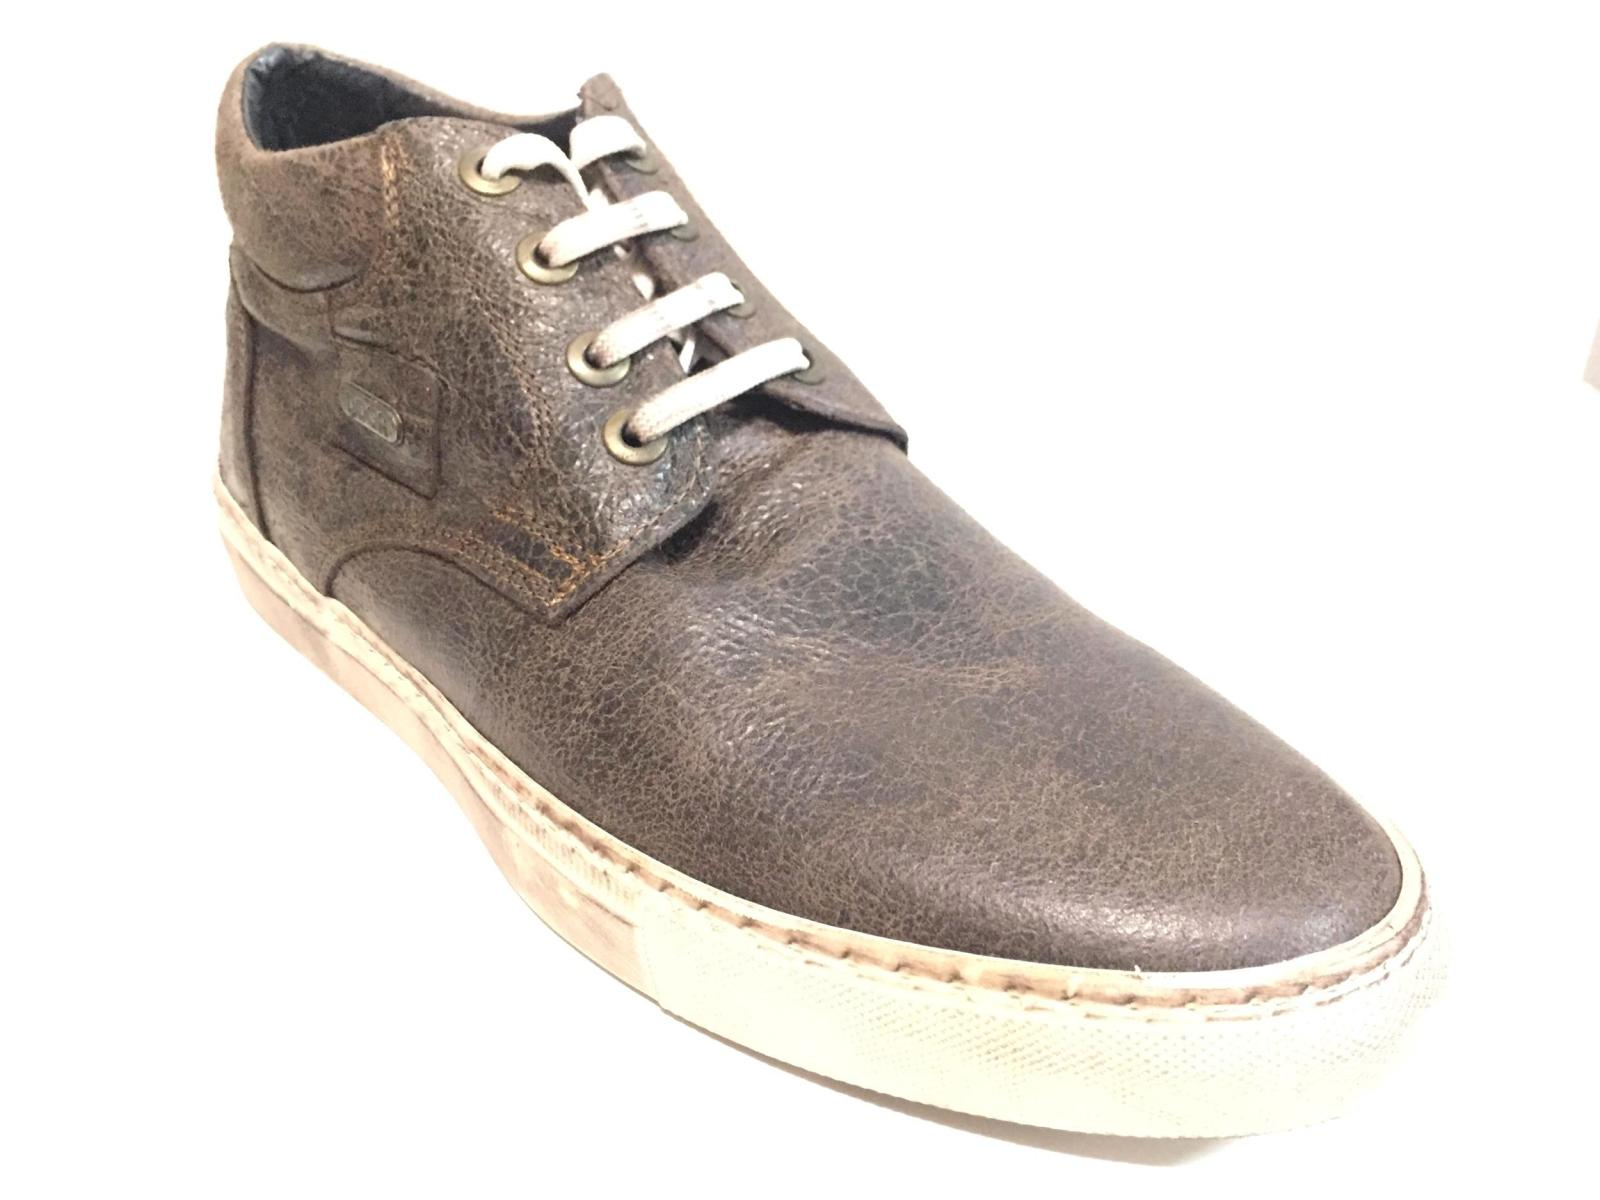 SCARPE CASUAL SNEAKERS UOMO DOOA SCA11D PELLE MARRONE ORIGINALE AI NEW